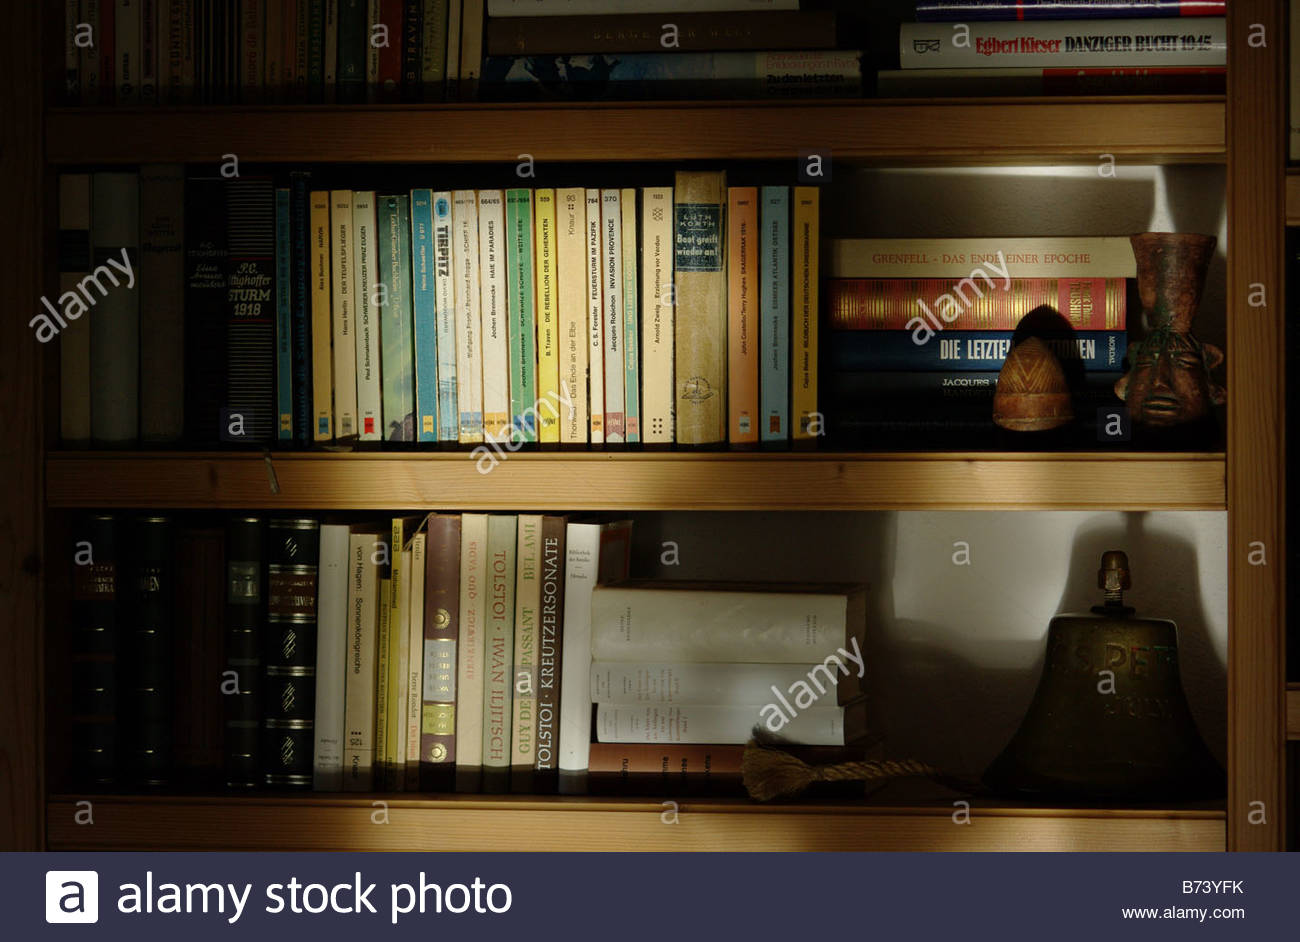 Europe, Germany, Bavaria, View Of Book Books On A Shelf Stock Photo